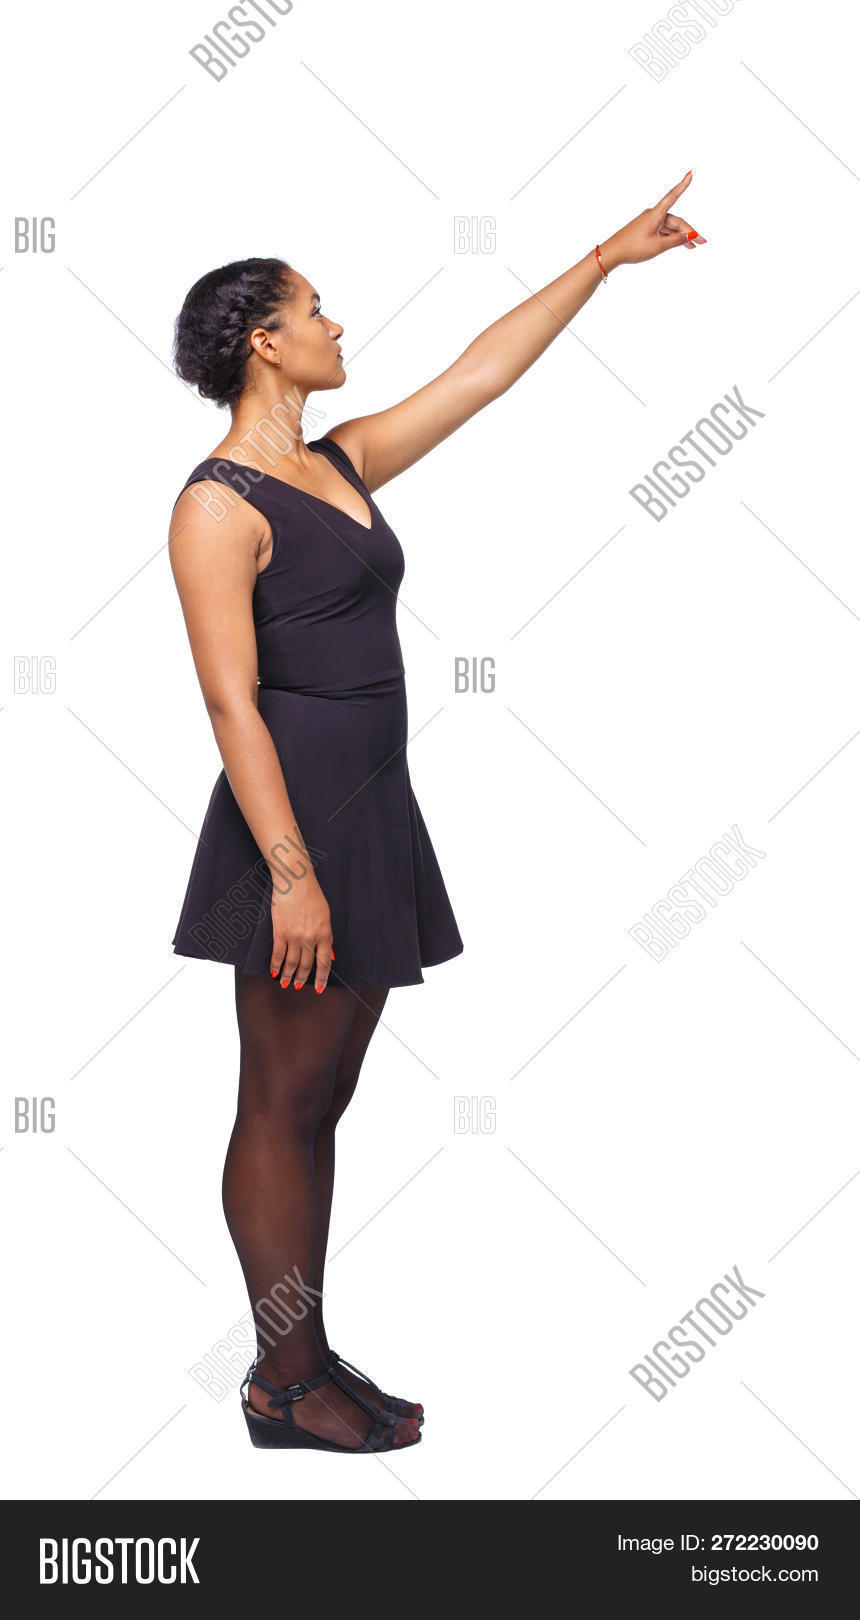 bac28876ed669 Side view of a black African-American woman in a brown dress pointing  upwards.